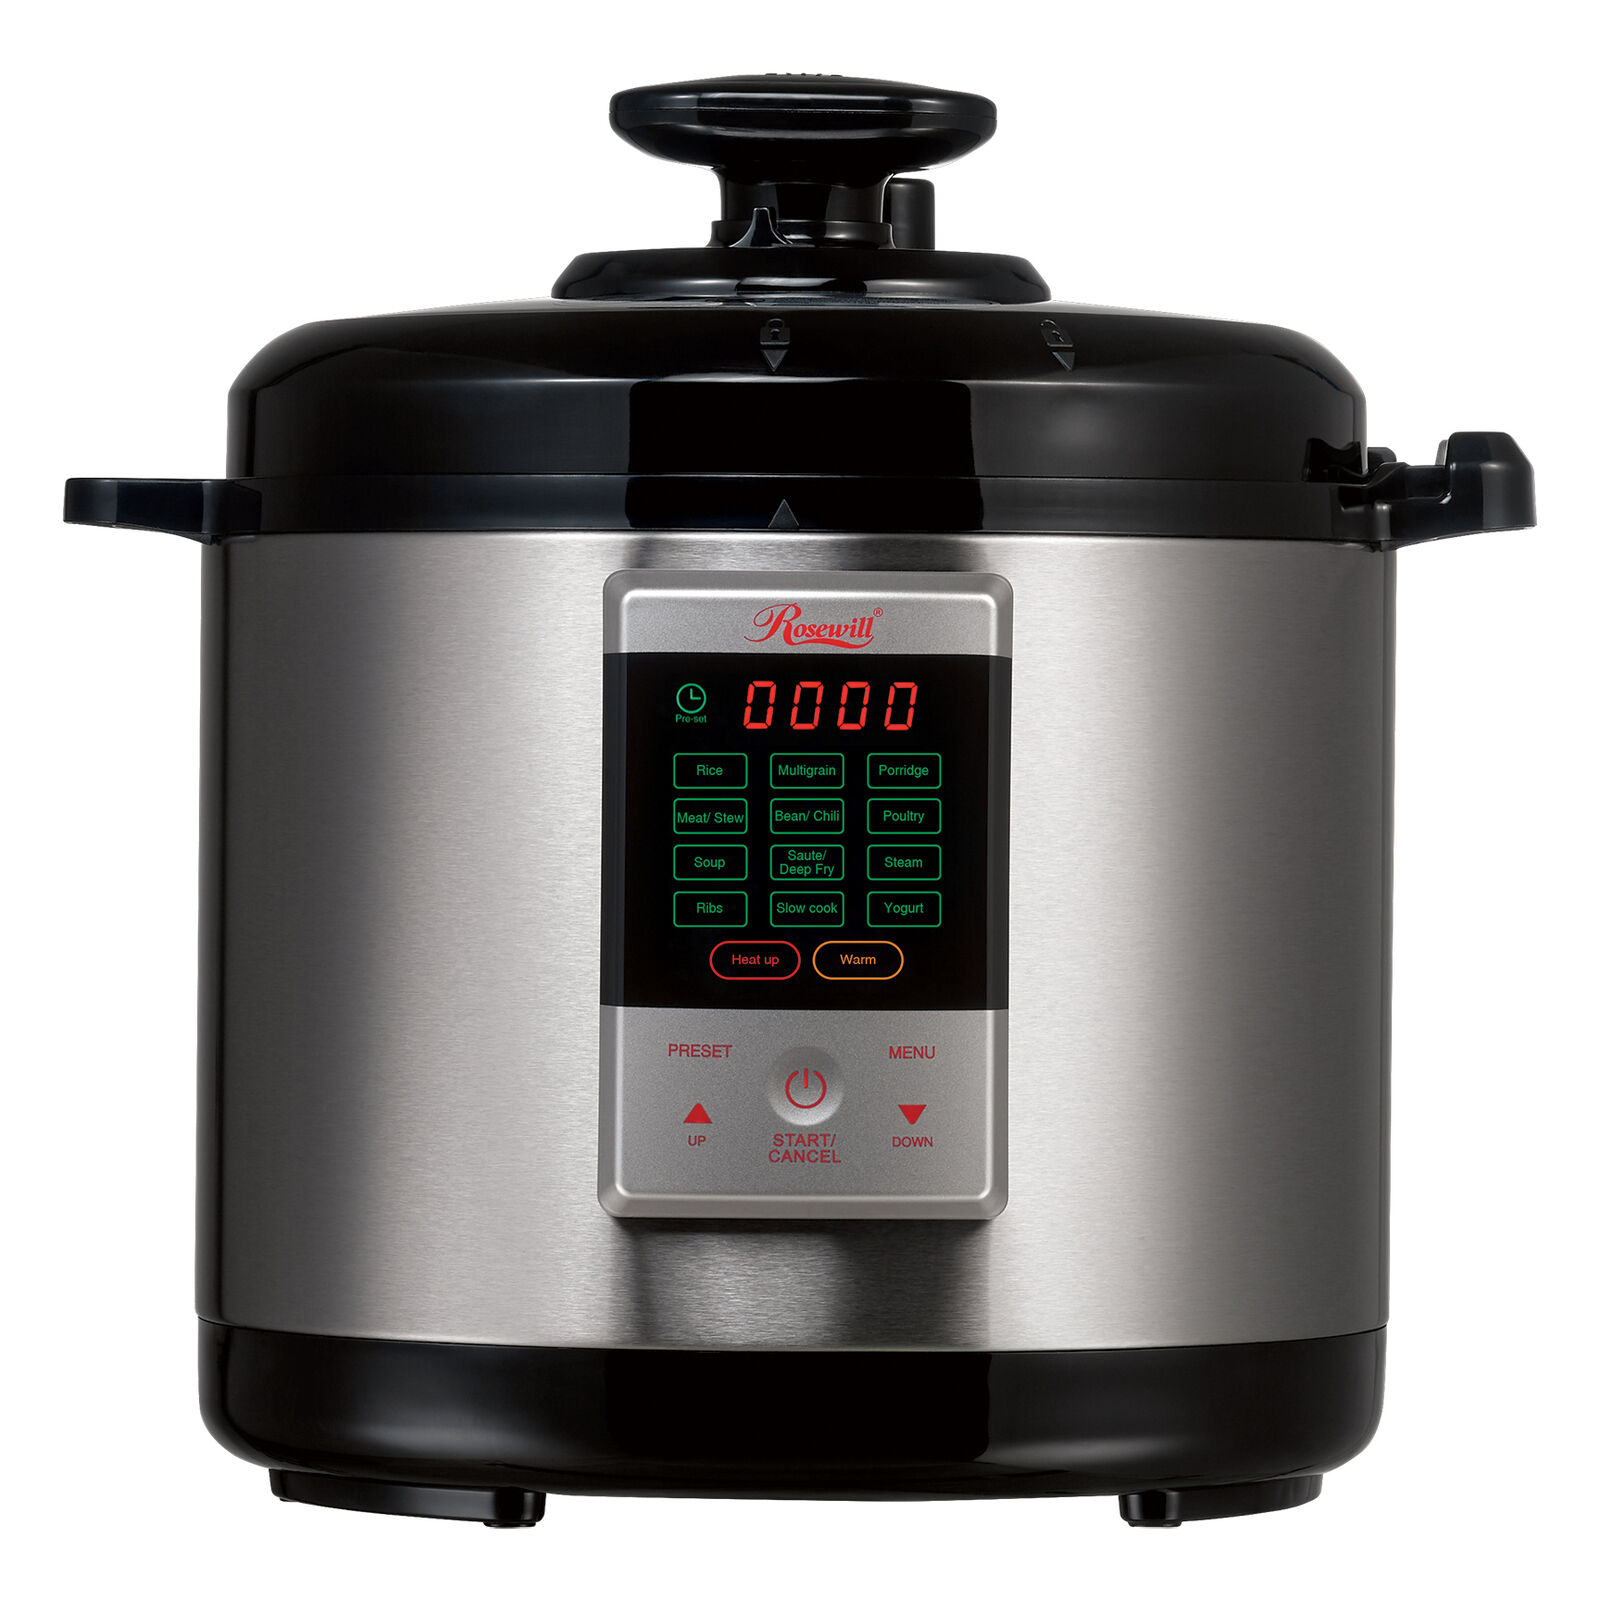 Digital Electric Pressure Cooker Stainless Steel Instapot Multi-Functional 6 Qt